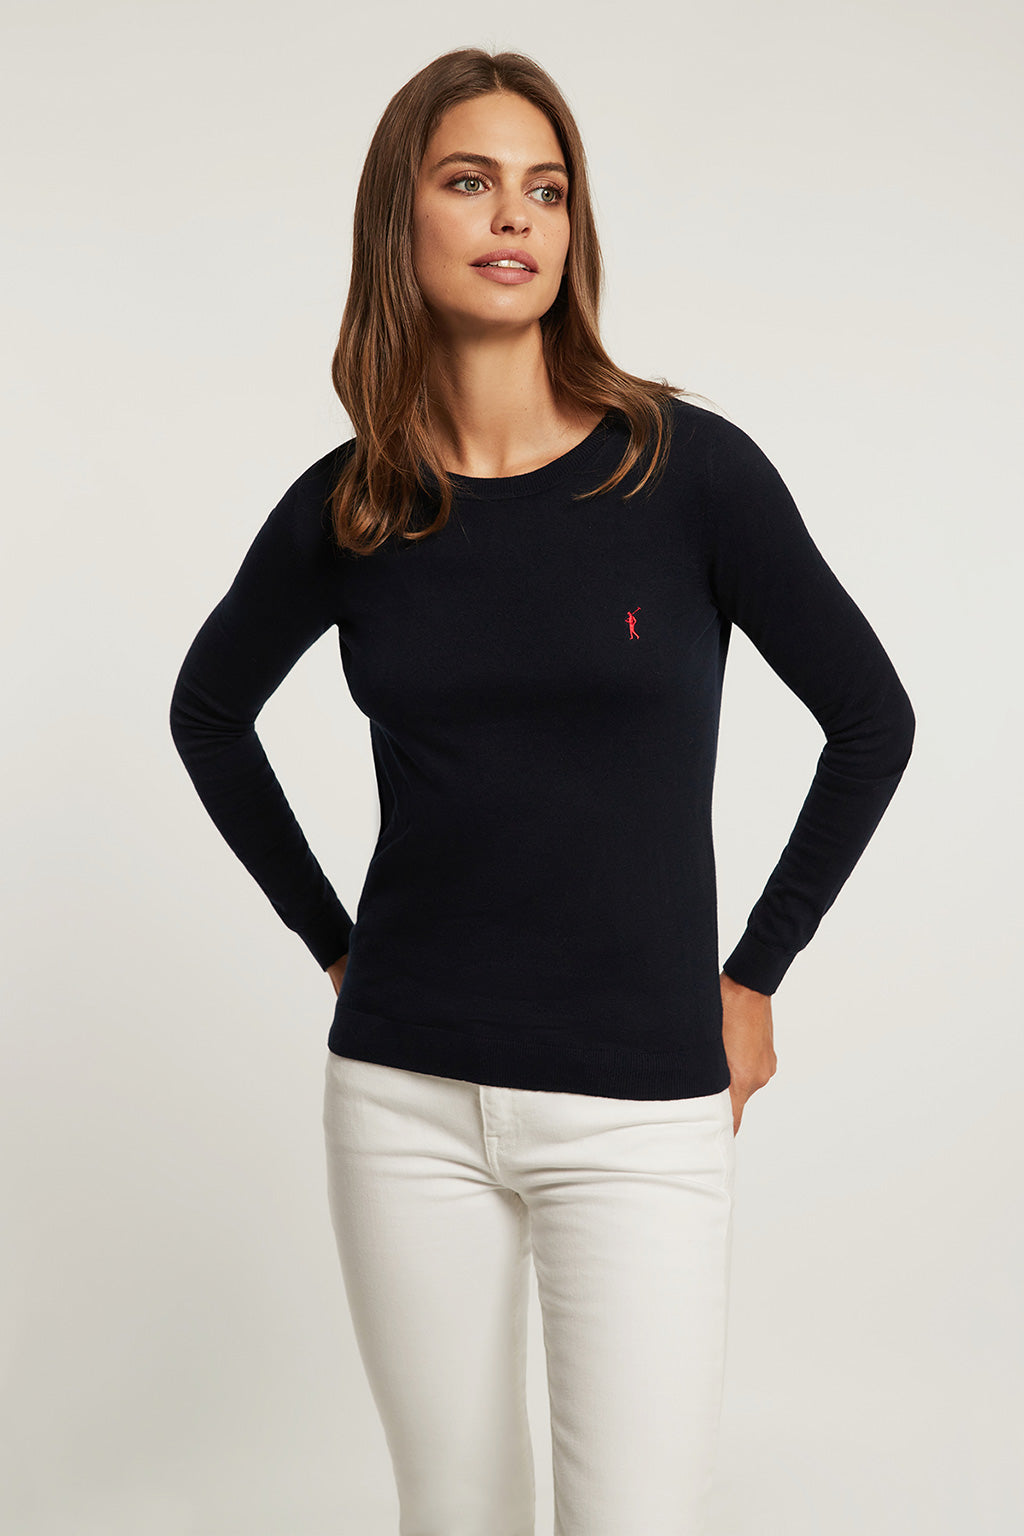 Navy blue round neck light jumper